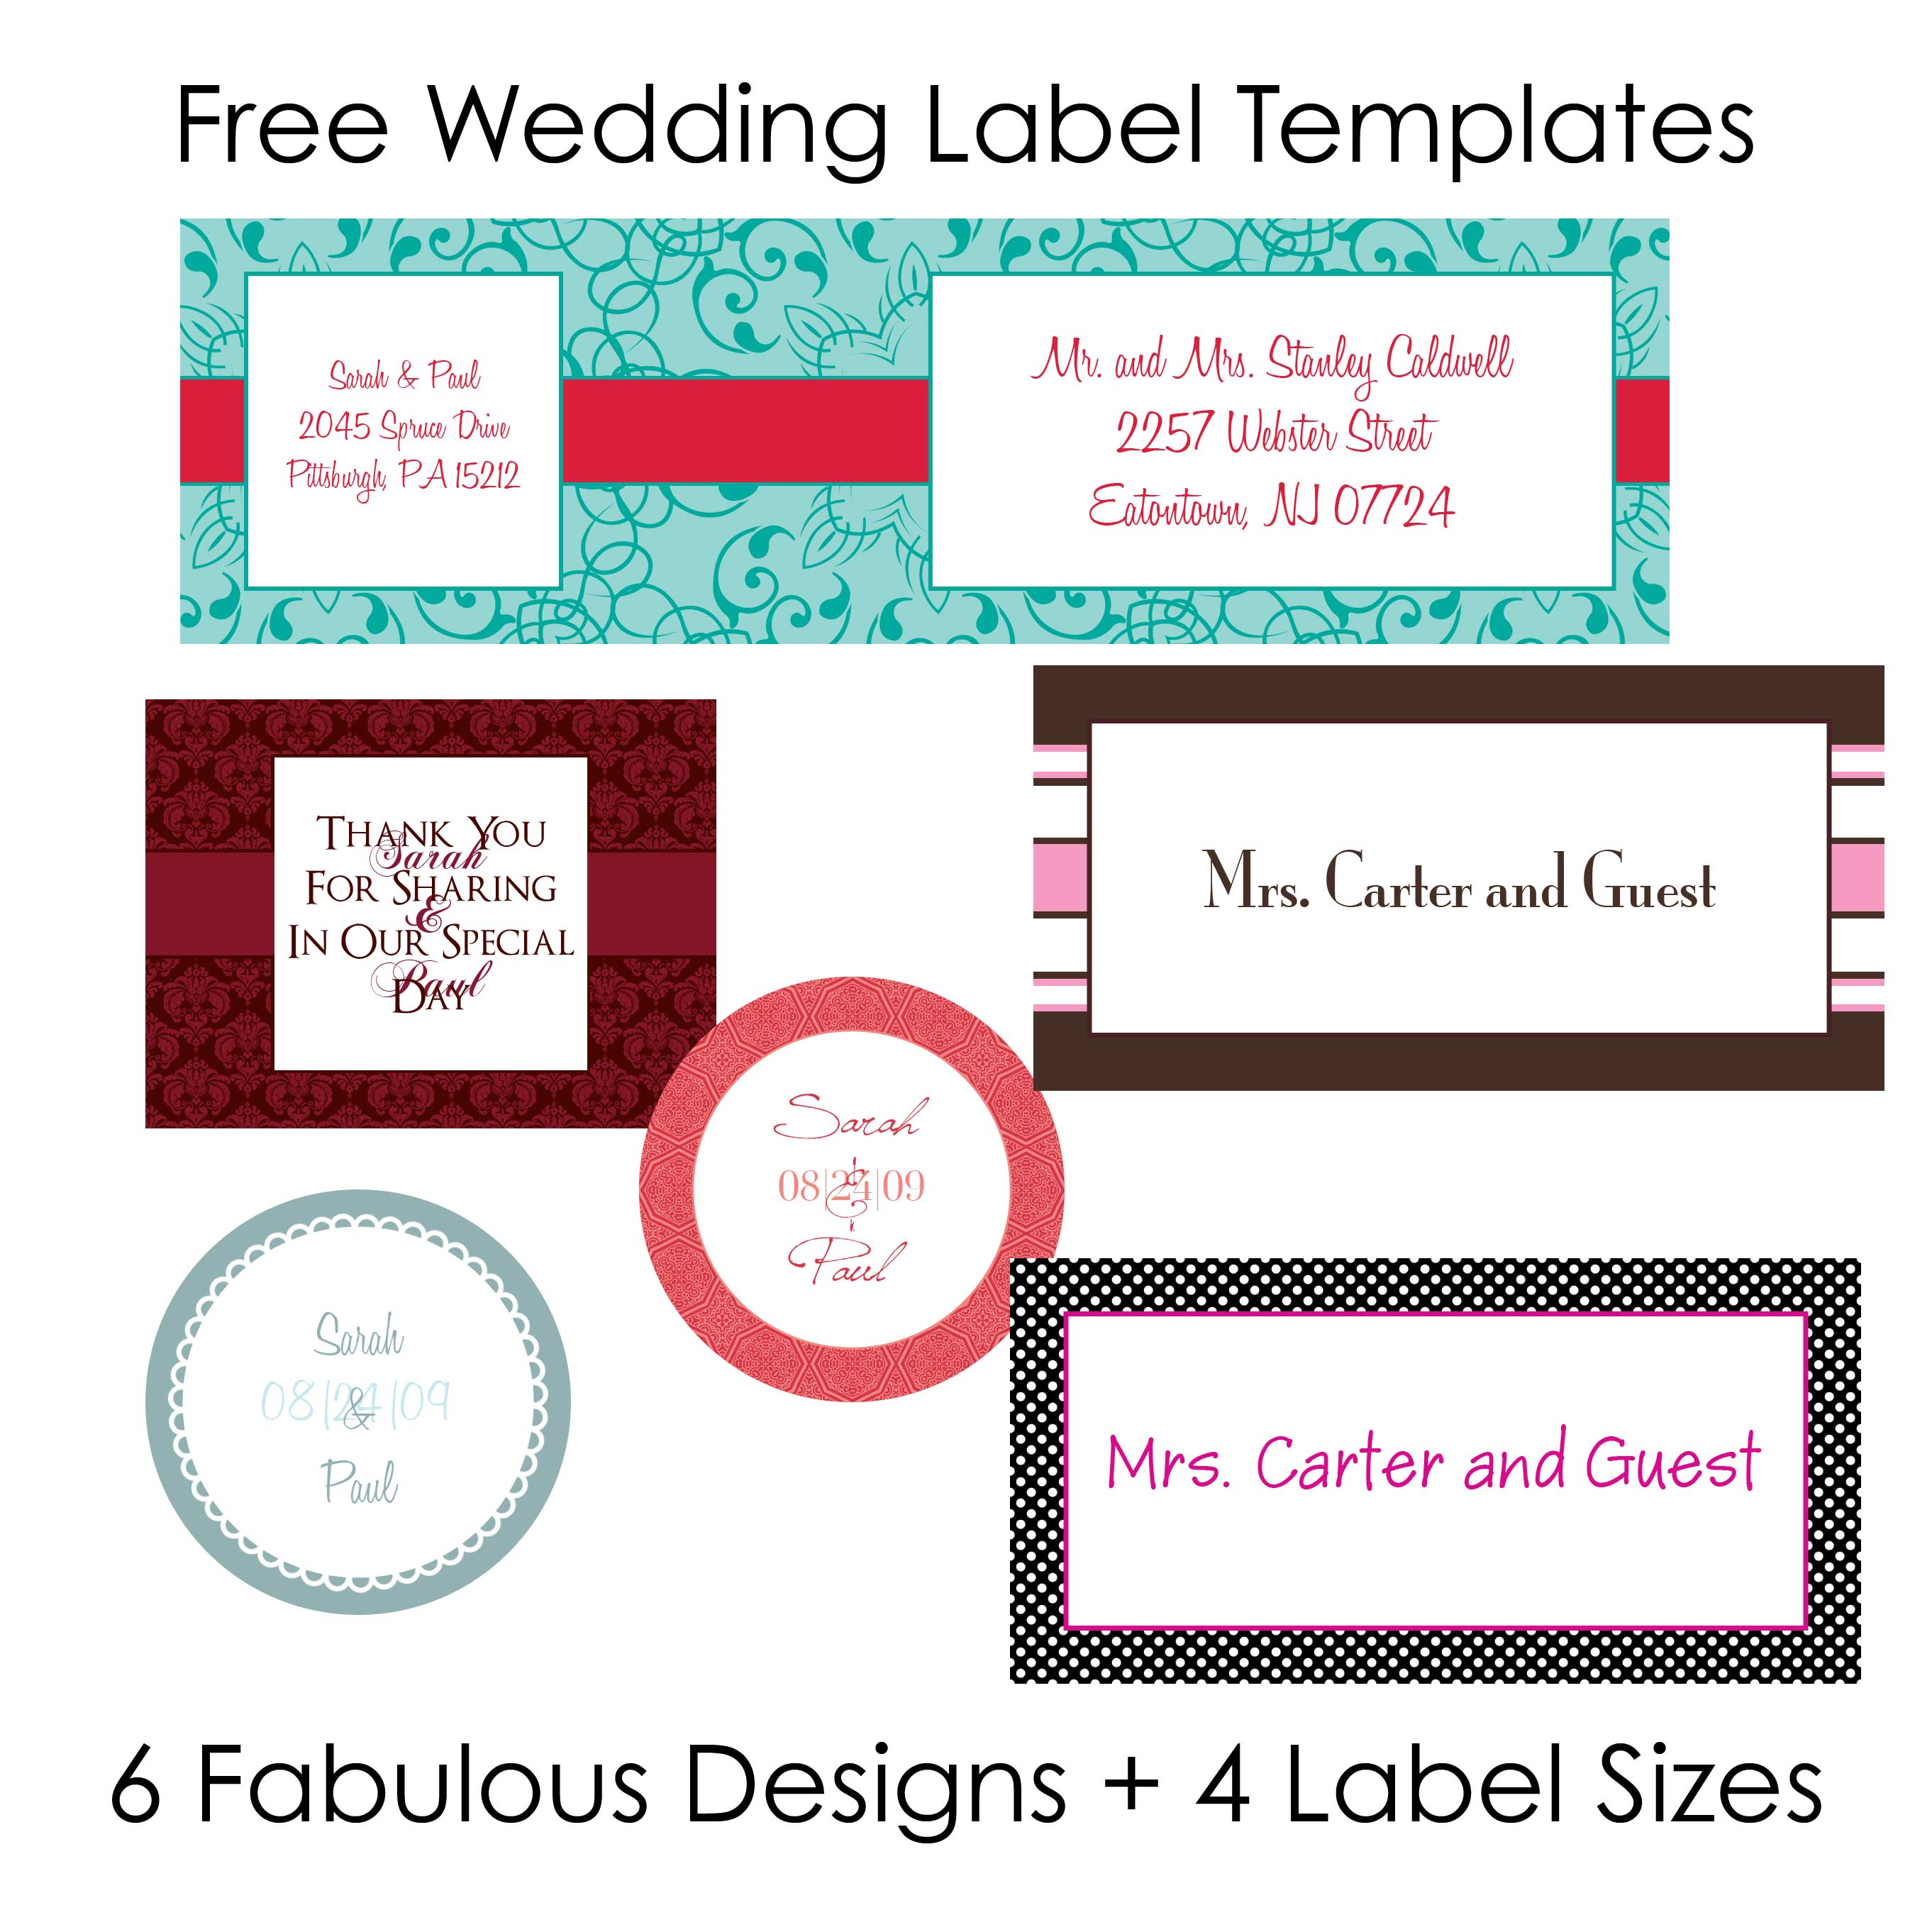 DIY Wedding Labels for free collection two | Worldlabel Blog